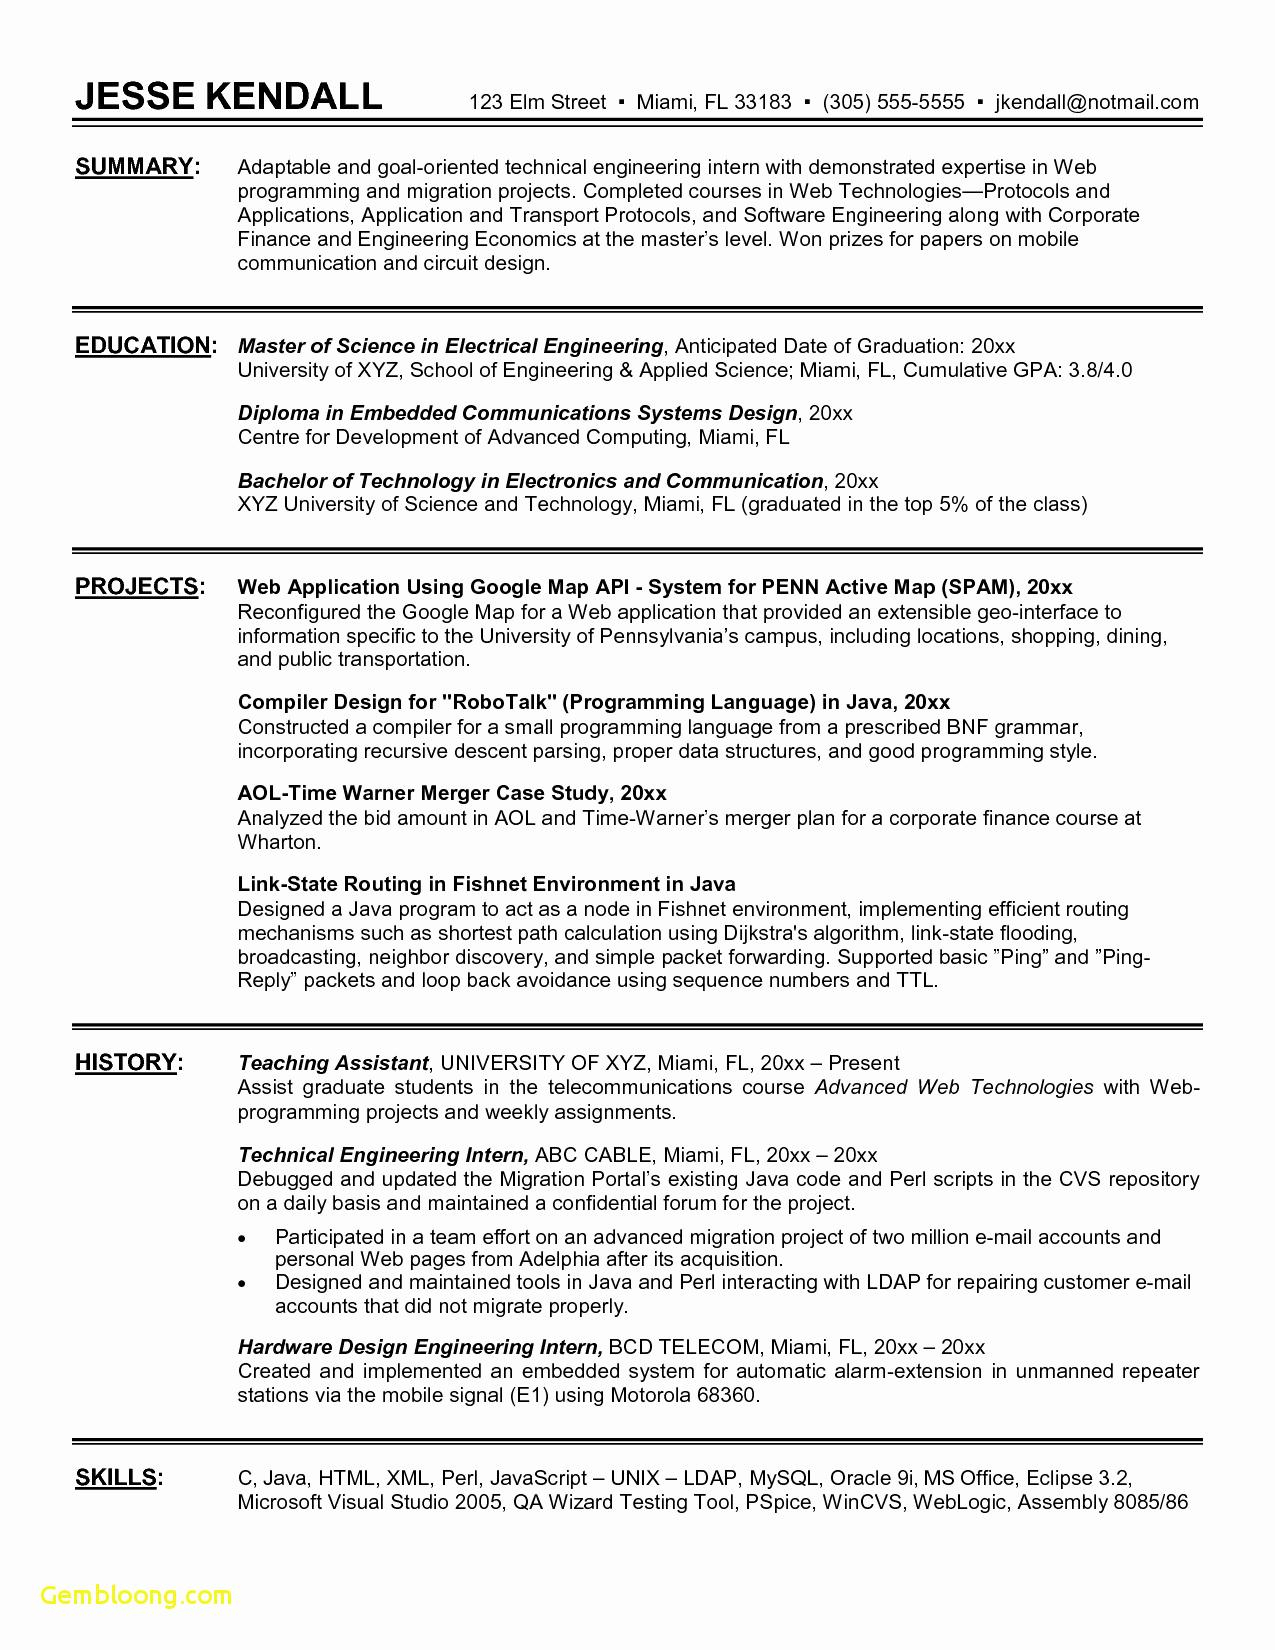 Wharton Resume Template - Civil Engineer Resume format Free Download Lovely Sample Resume for